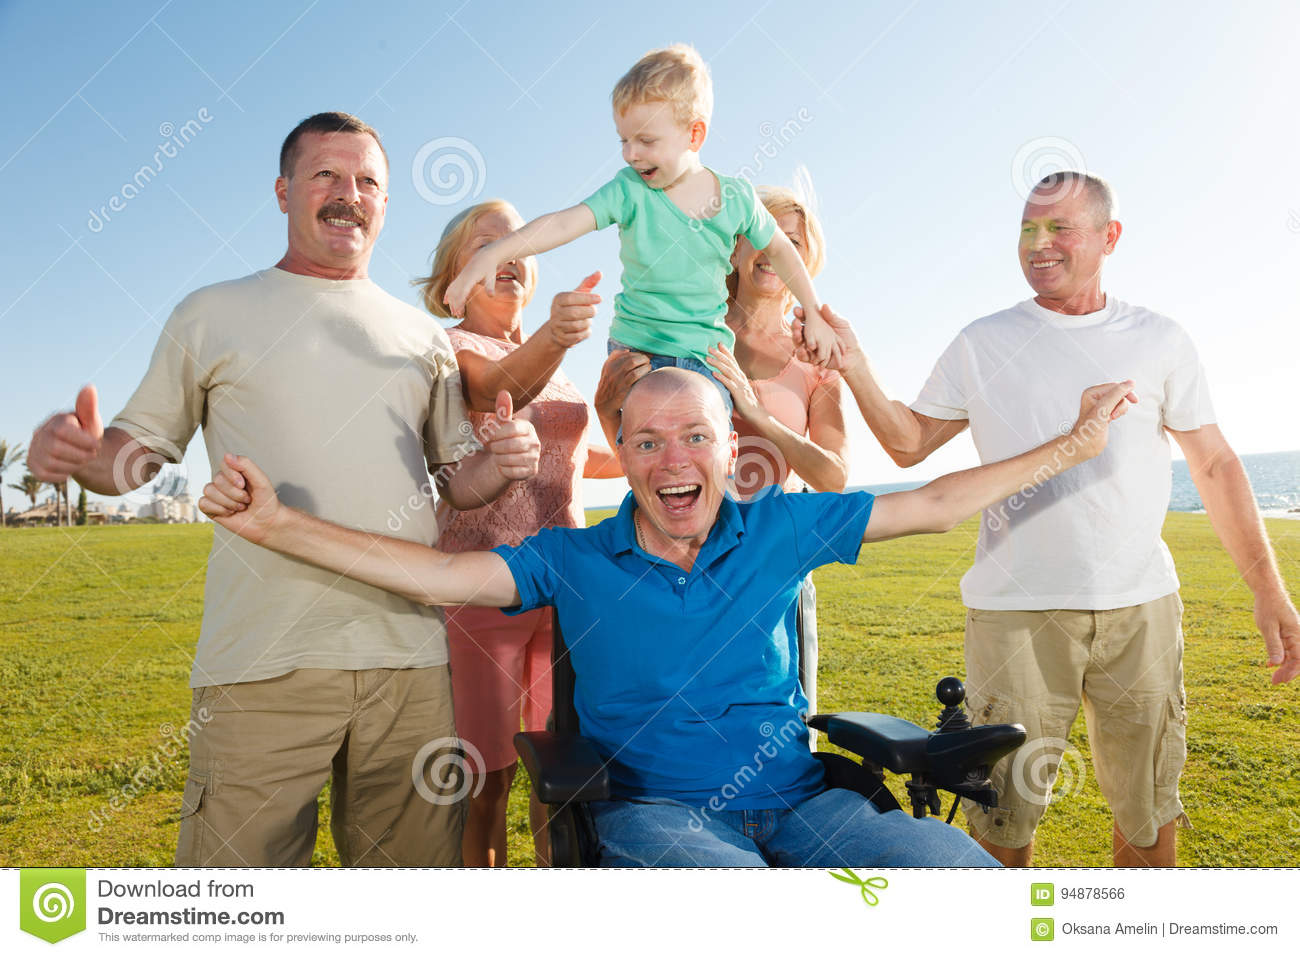 Disabled man with family.